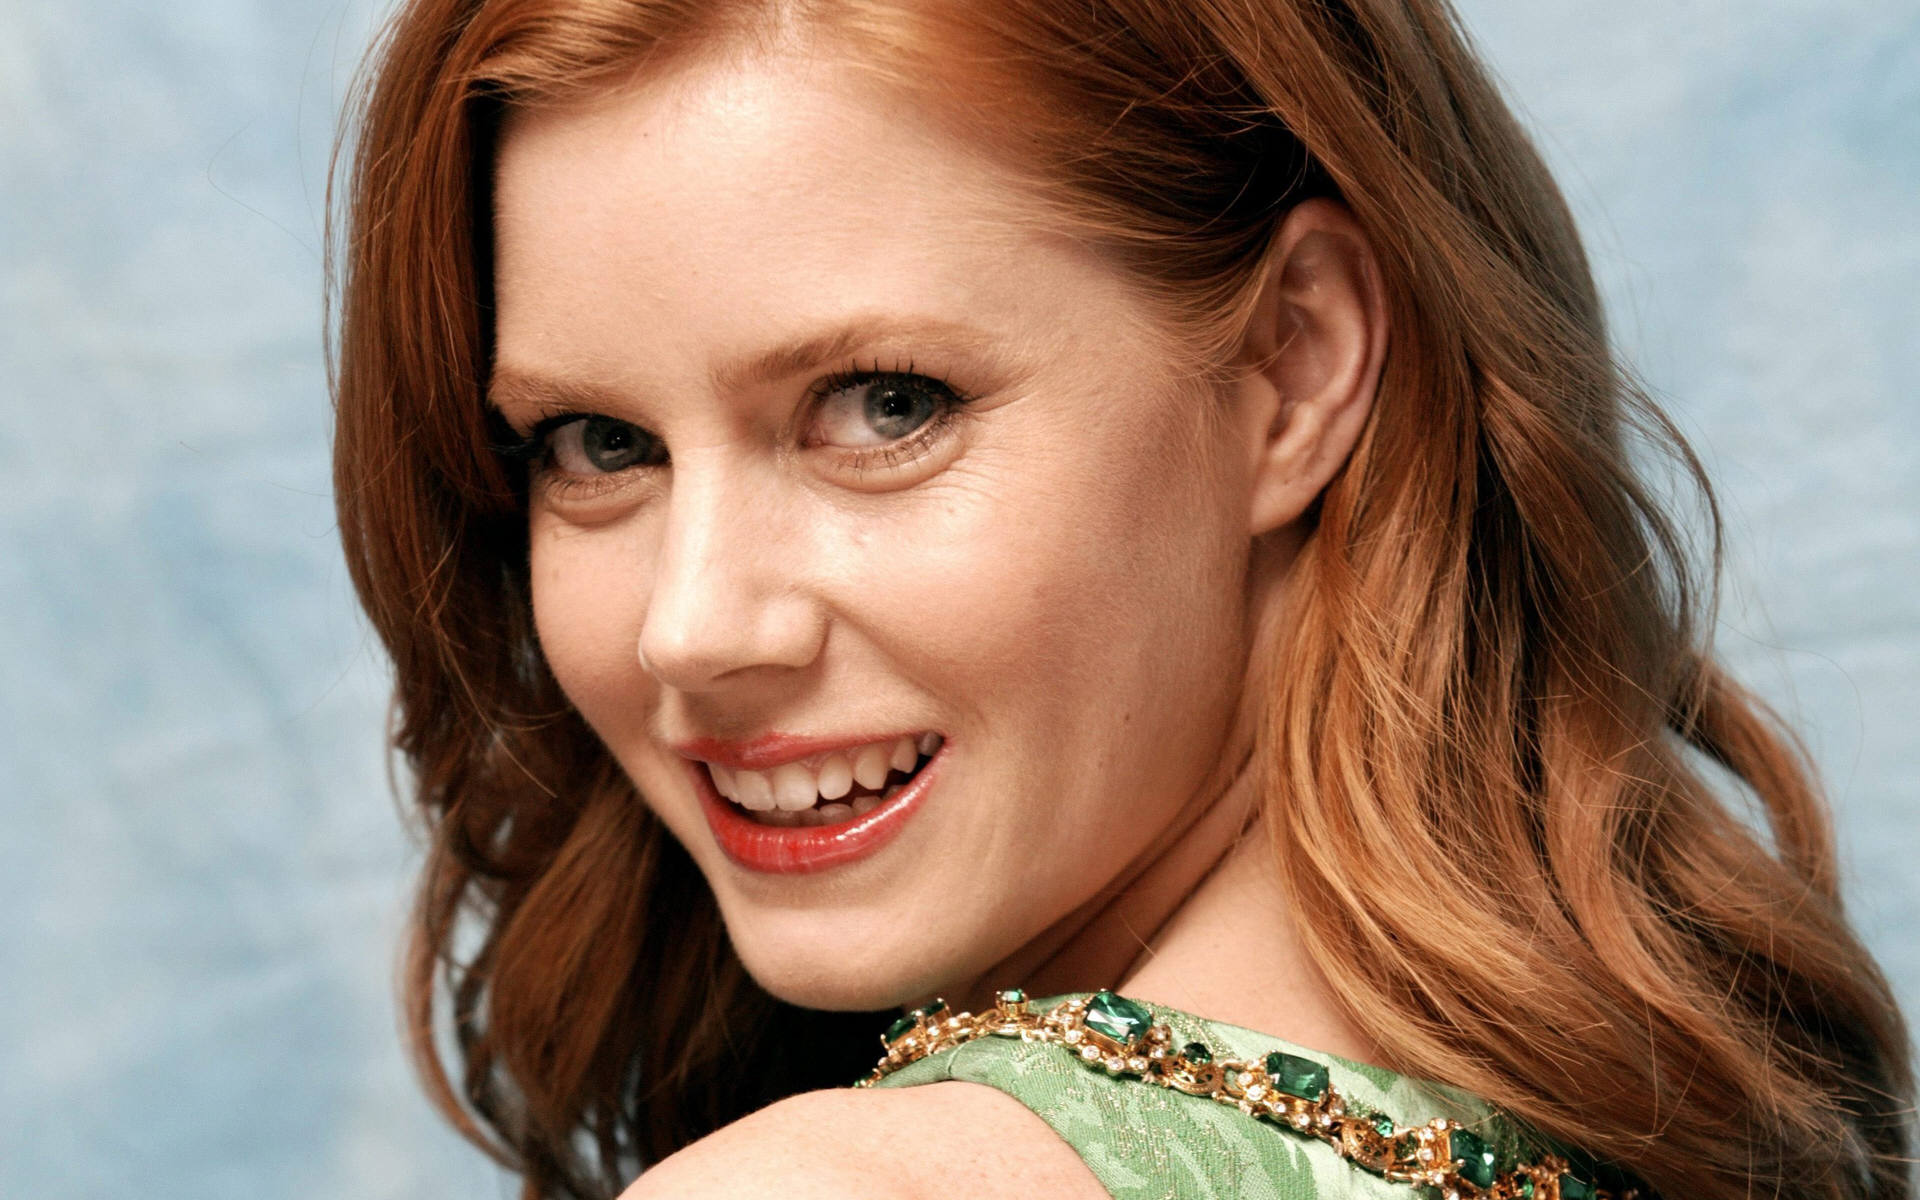 Download Amy Adams Fantastic Back Smile Look Mobile Free Background Pictures Hd